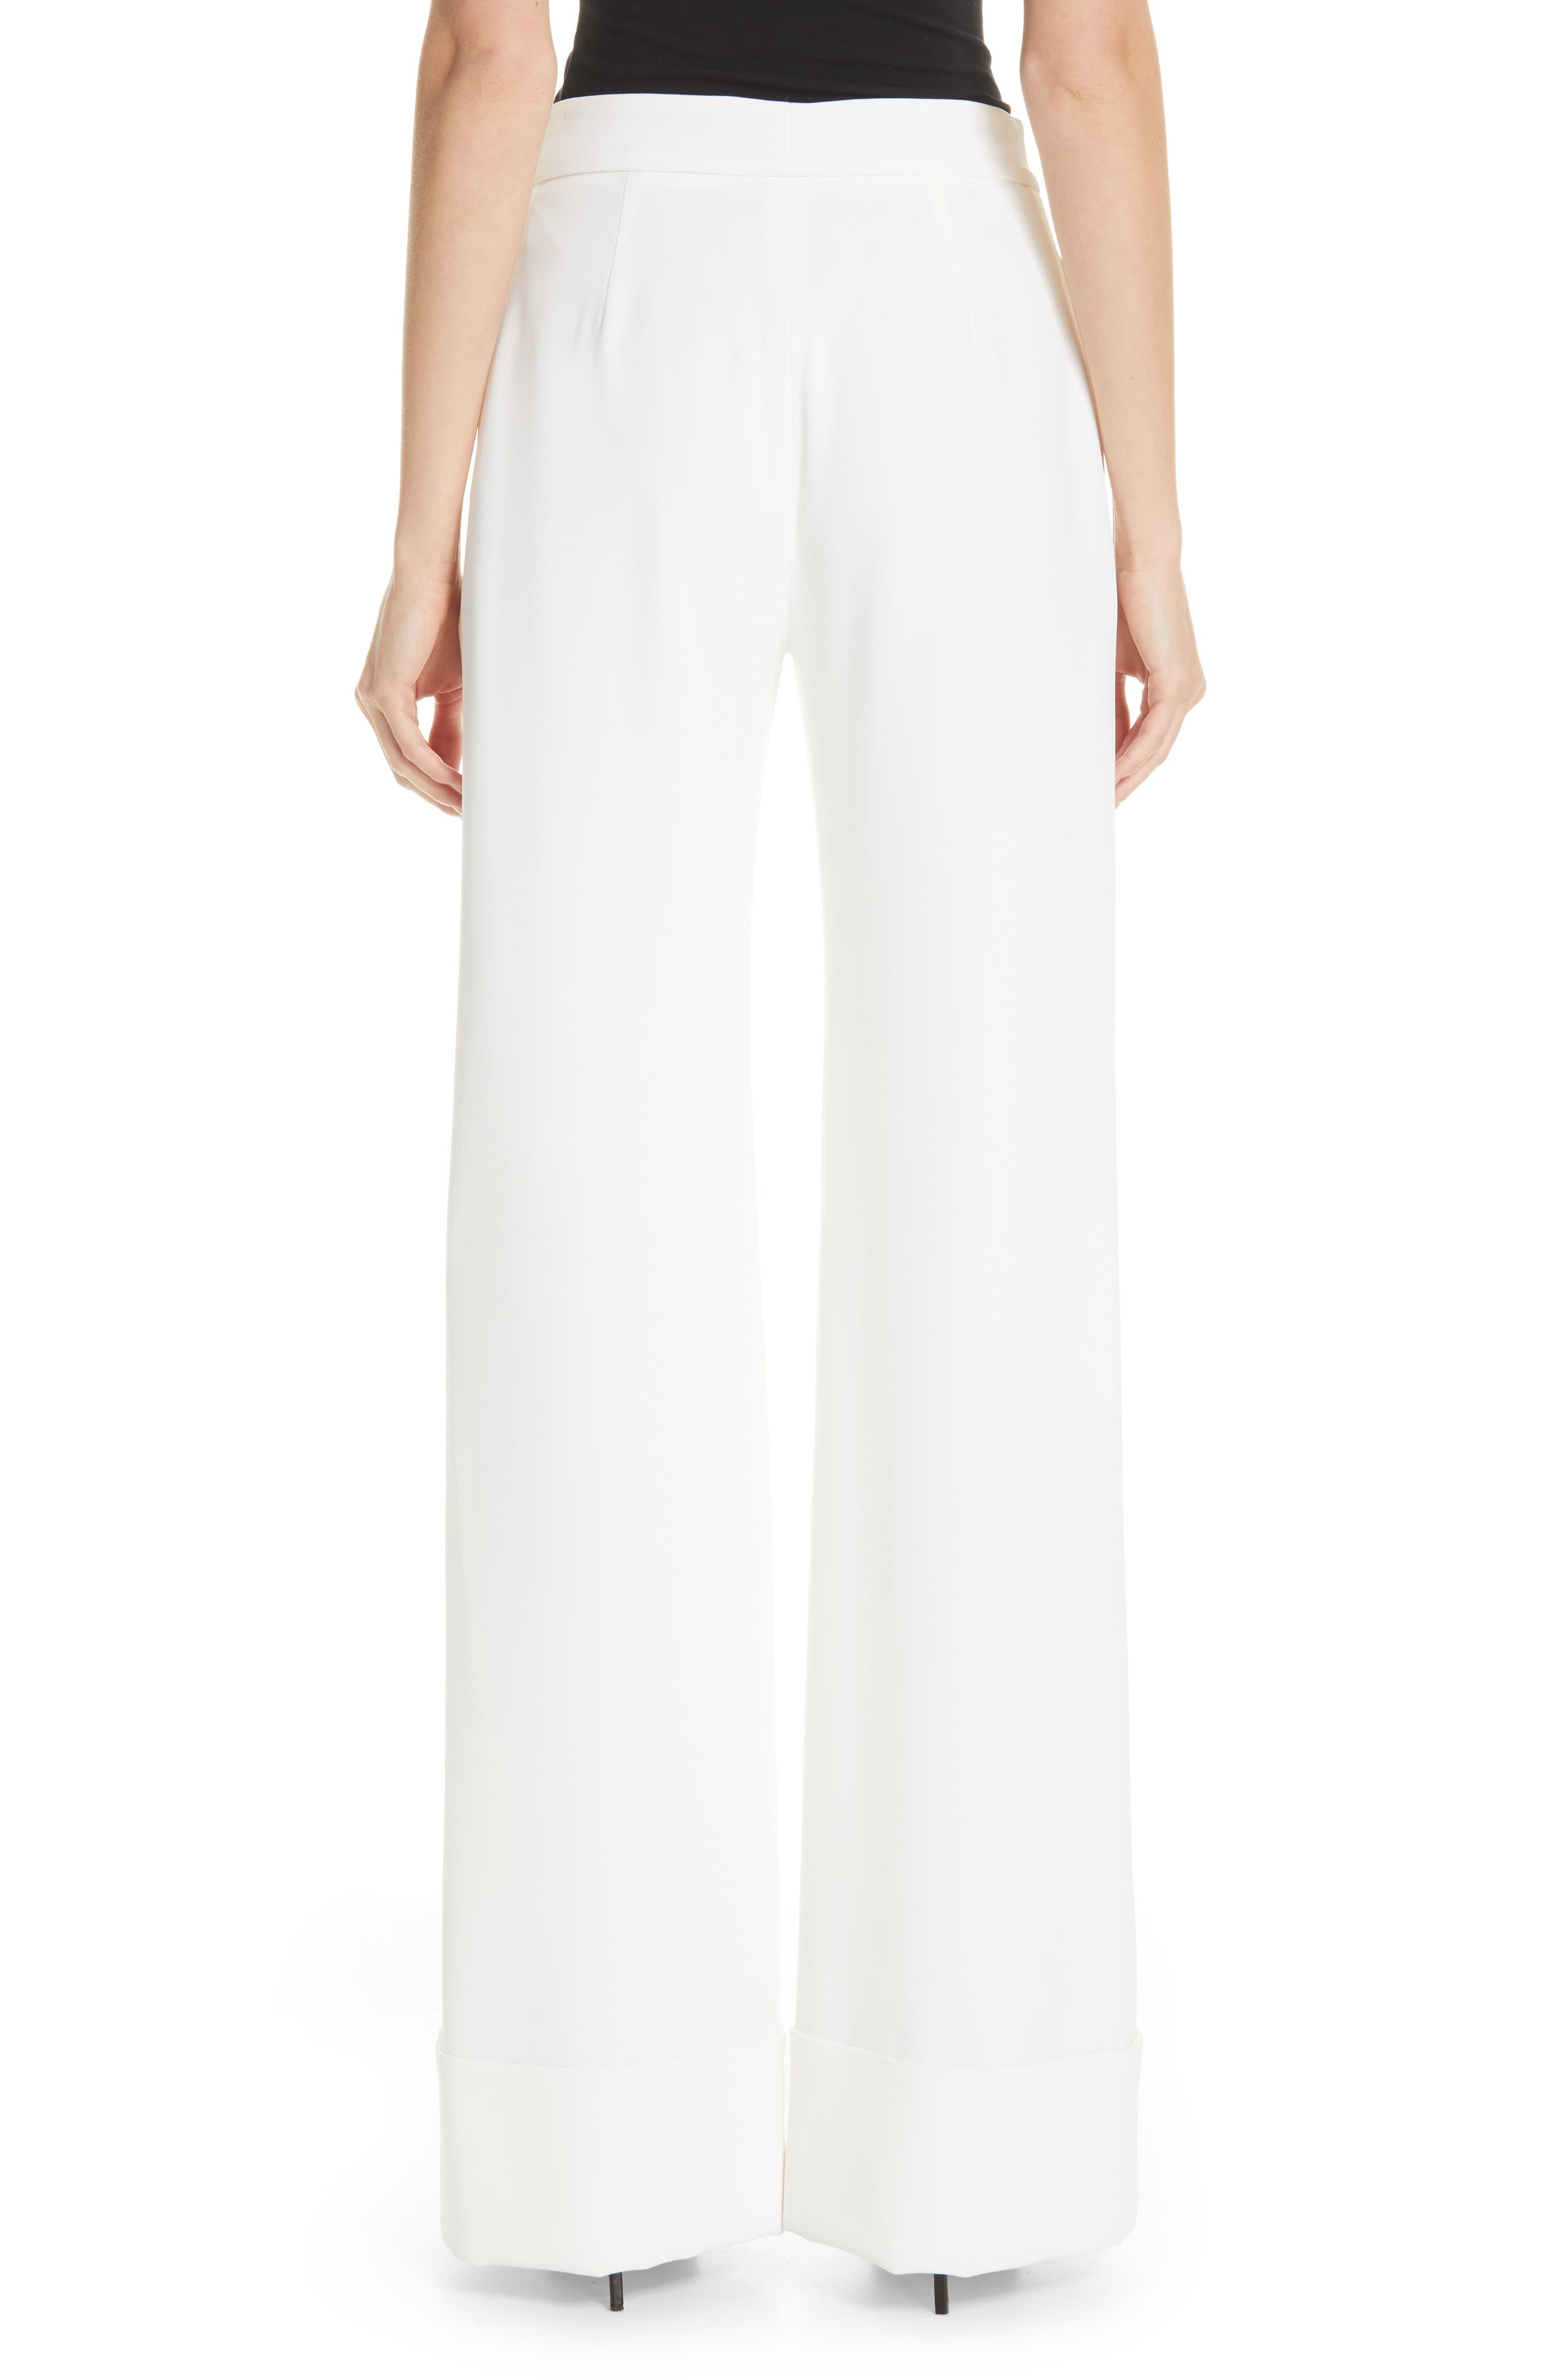 BRANDON MAXWELL, Wide Leg Cuff Pants, Alternate thumbnail 2, color, IVORY